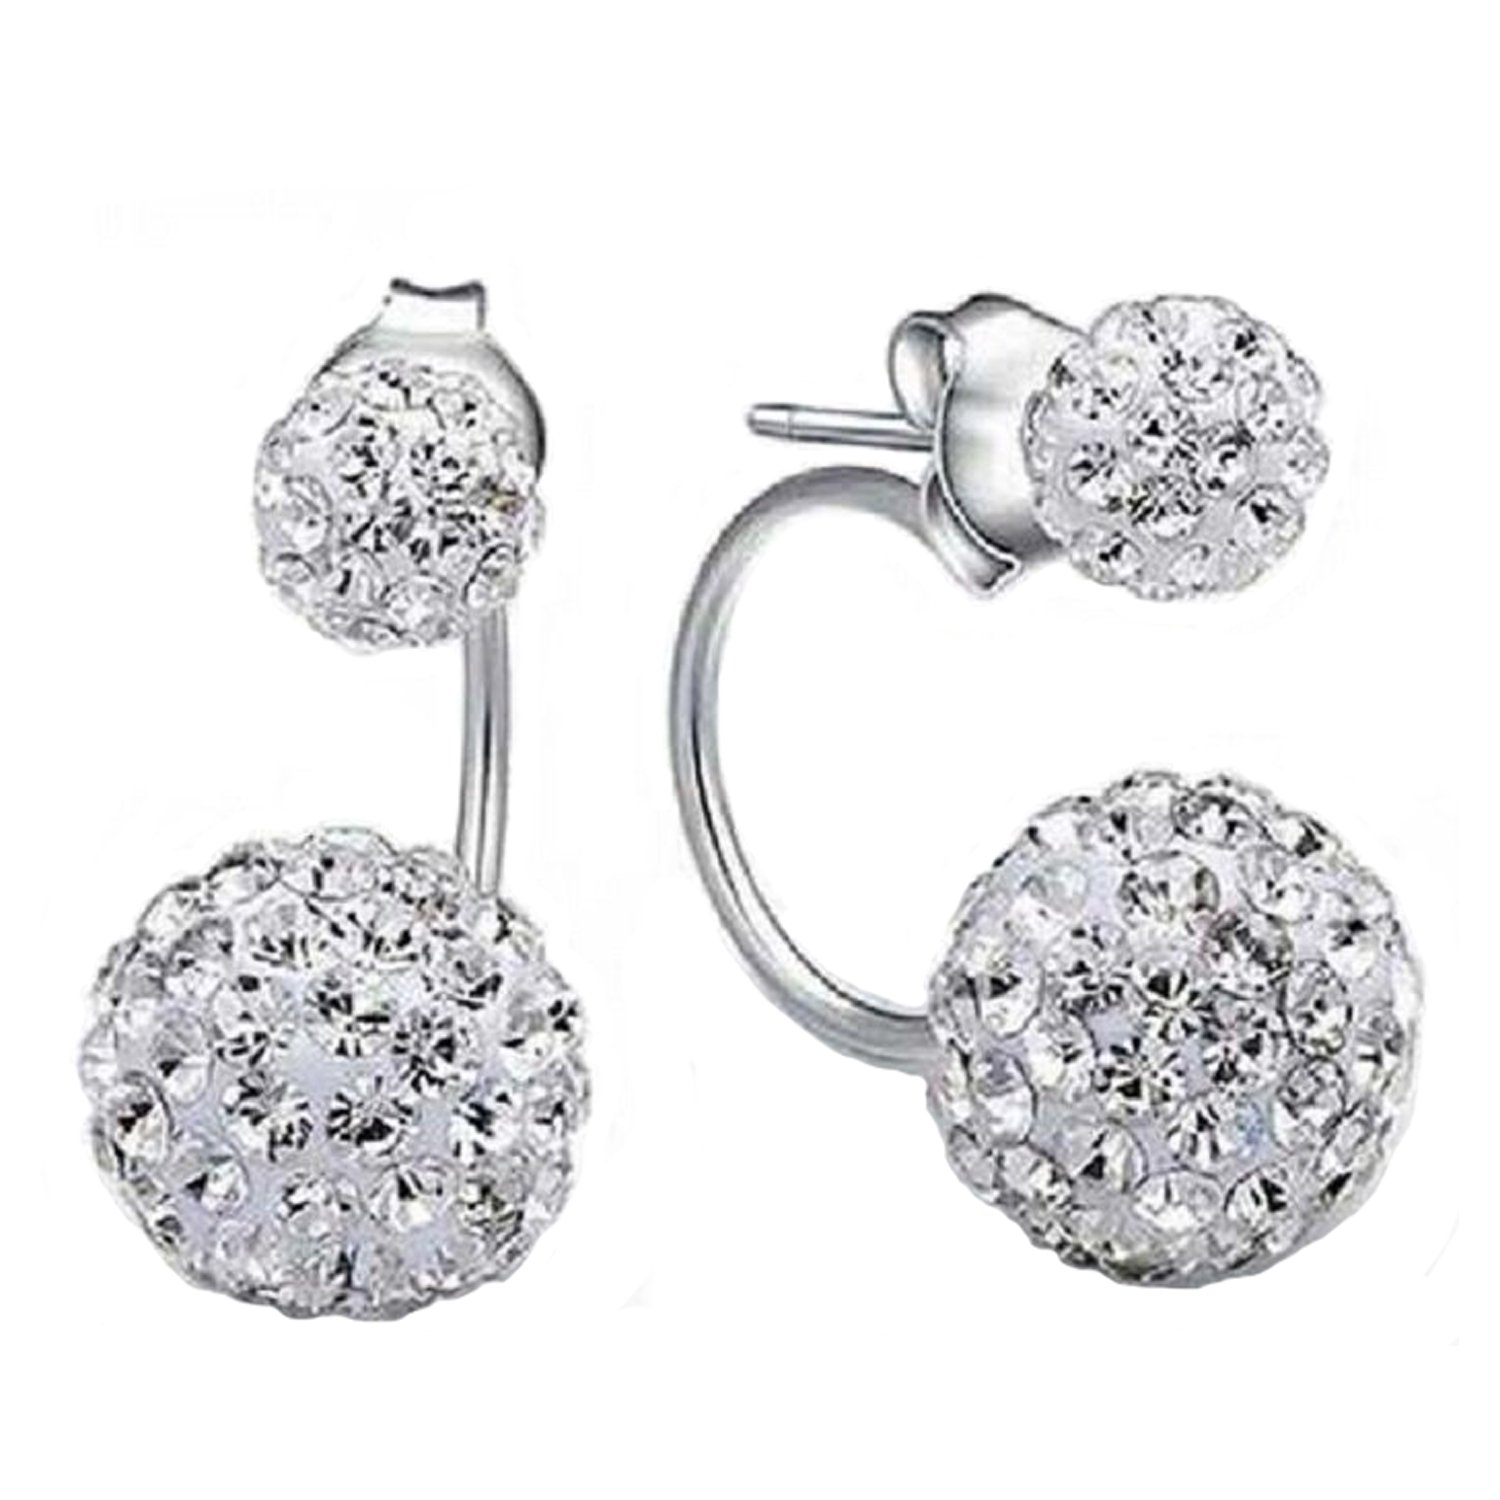 Sterling Silver Earrings Sparkling Crystal Spheres Front And